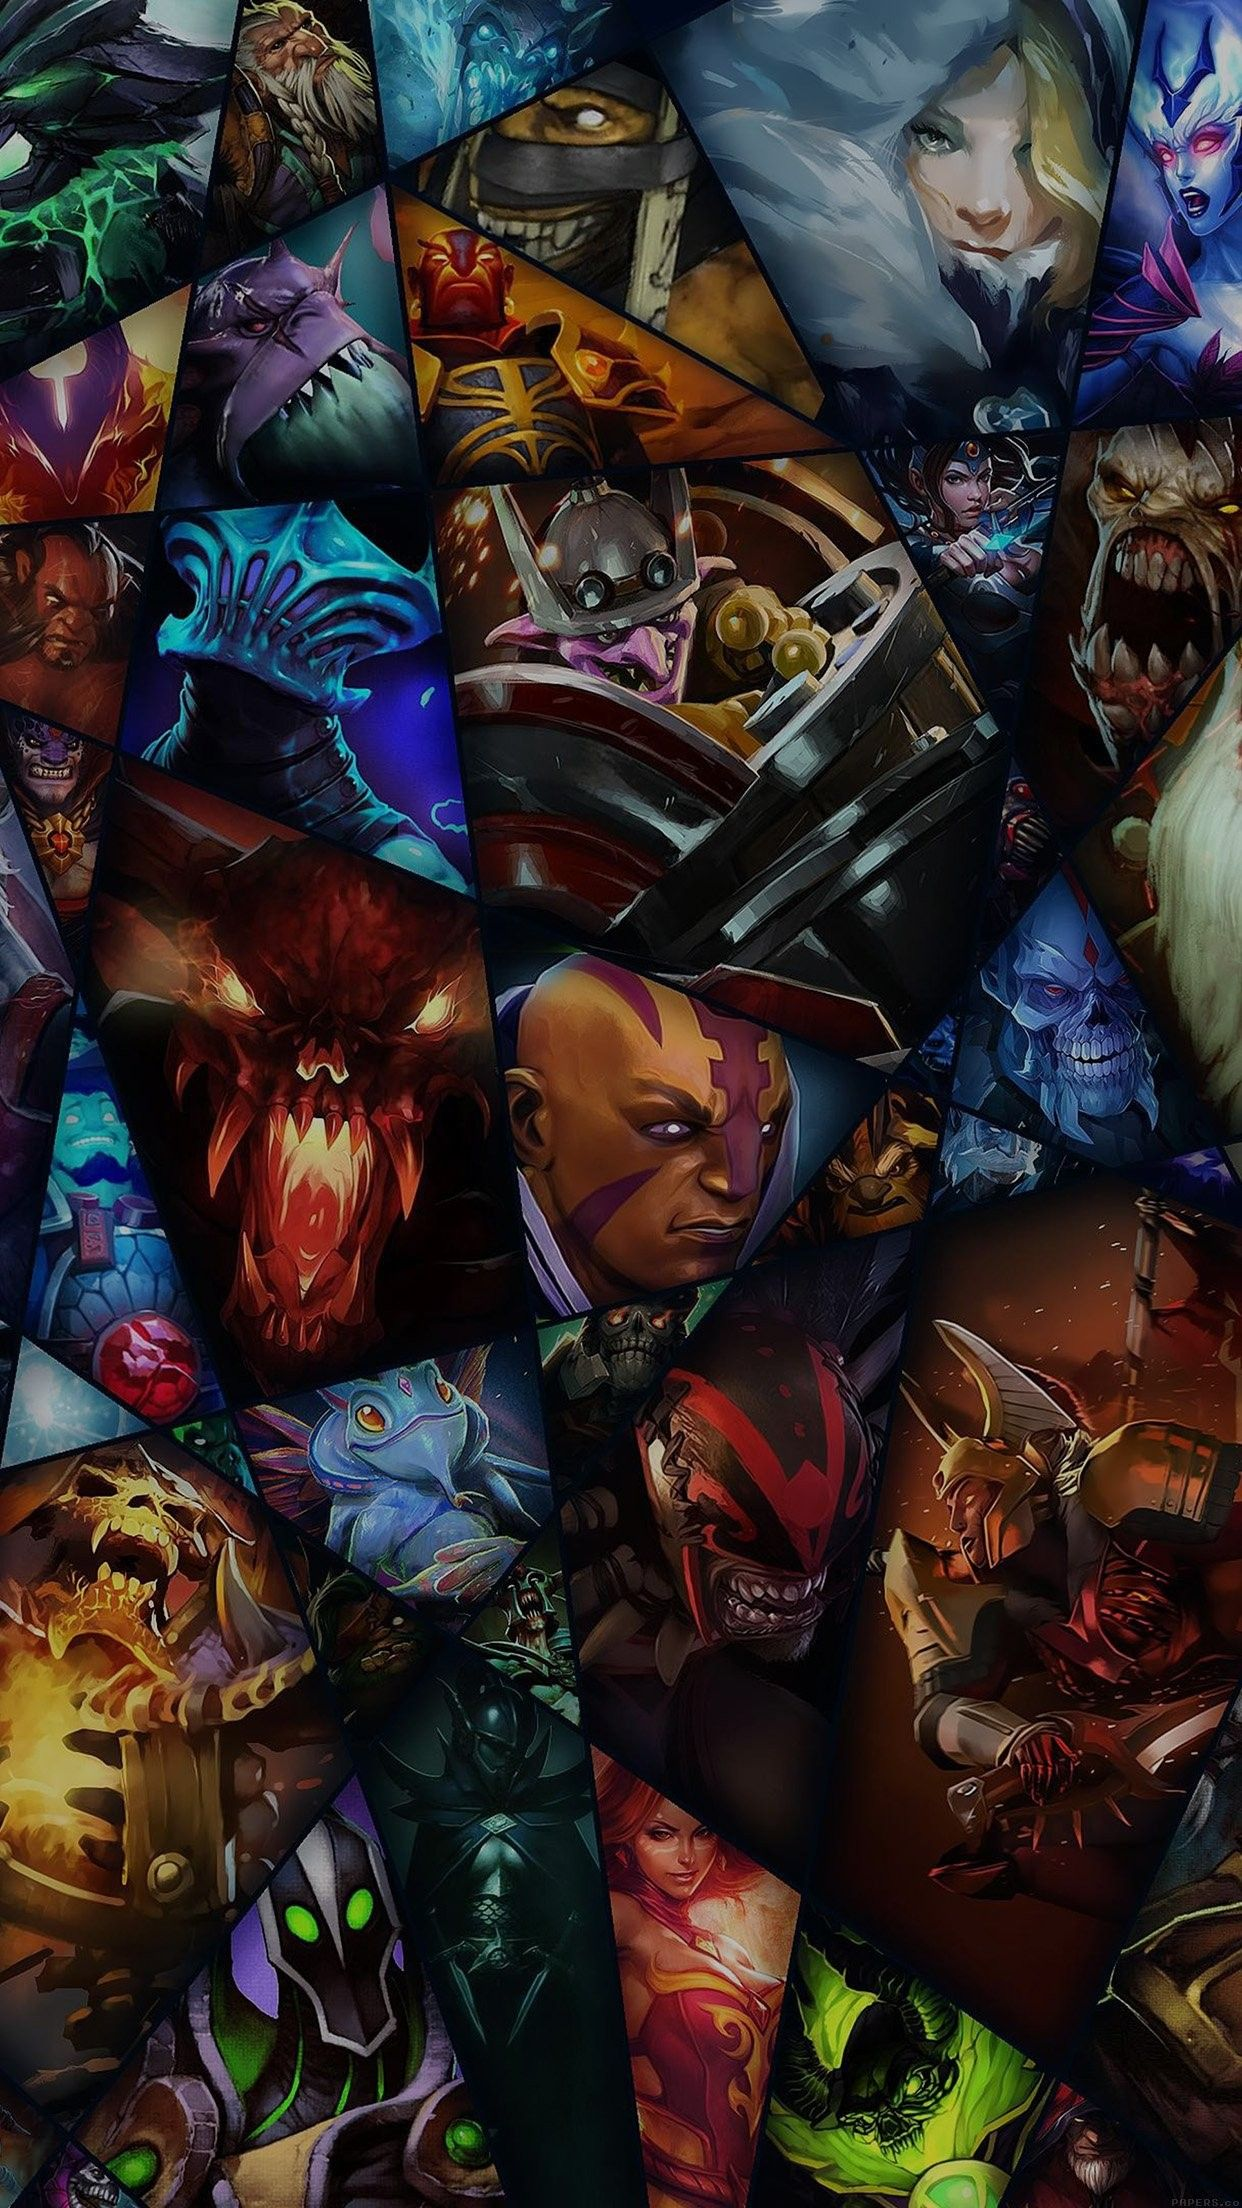 Dota 2 Heroes Wallpaper Dota 2 Iphone Wallpaper Dota 2 Wallpapers Hd Hero Wallpaper